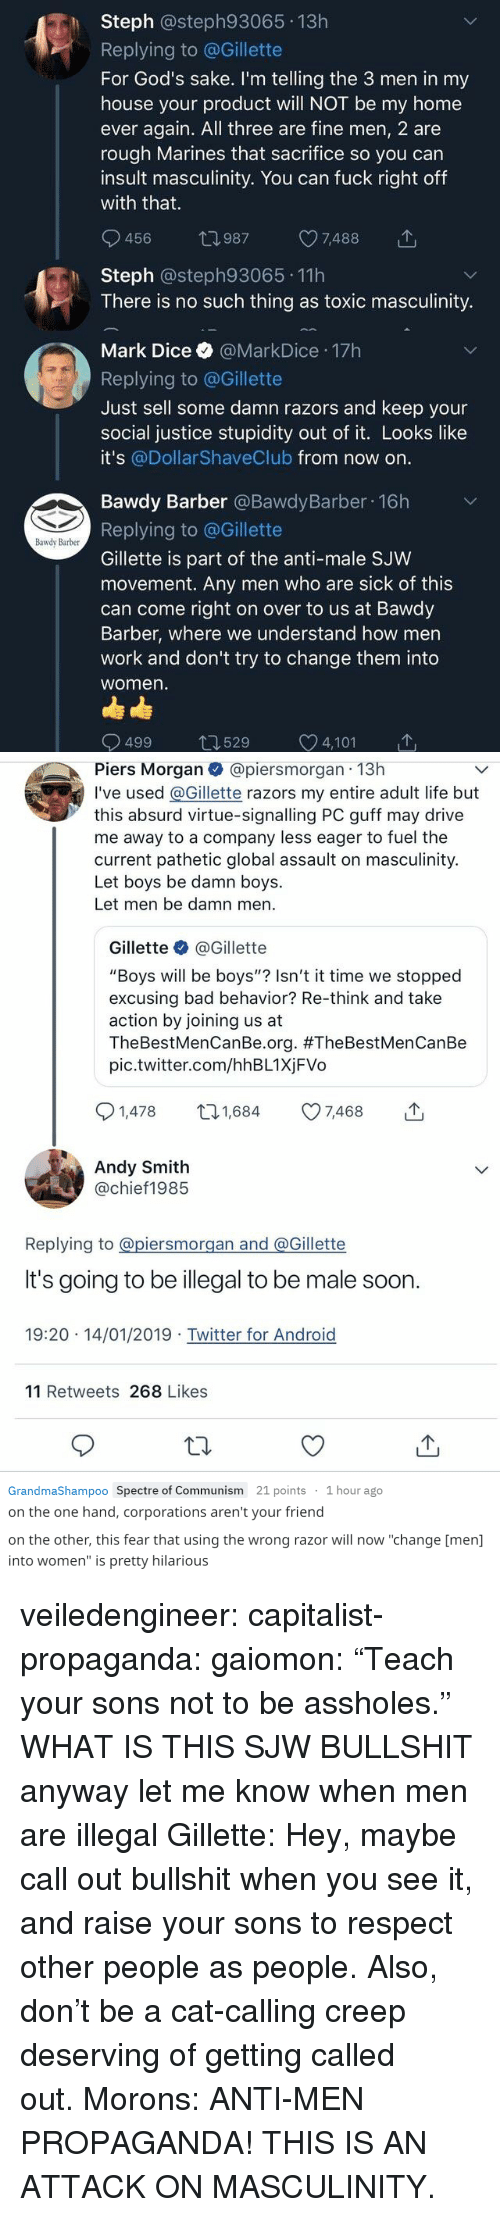 "spectre: h Steph @steph93065 13h  Replying to @Gillette  For God's sake. I'm telling the 3 men in my  house your product will NOT be my home  ever again. All three are fine men, 2 are  rough Marines that sacrifice so you can  insult masculinity. You can fuck right off  with that.  456 t0987 7488  Steph @steph93065 11h  There is no such thing as toxic masculinity.  Mark Dice @MarkDice 17h  Replying to @Gillette  Just sell some damn razors and keep your  social justice stupidity out of it. Looks like  it's @Dollar ShaveClub from now on  Bawdy Barber @BawdyBarber 16h  Replying to @Gillette  Gillette is part of the anti-male SJW  movement. Any men who are sick of this  can come right on over to us at Bawdy  Barber, where we understand how men  work and don't try to change them into  women  Bawdy Barber  499 529 C 4,101   Piers Morgan@piersmorgan 13h  I've used @Gillette razors my entire adult life but  this absurd virtue-signalling PC guff may drive  me away to a company less eager to fuel the  current pathetic global assault on masculinity.  Let boys be damn boys.  Let men be damn men  Gillette @Gillette  ""Boys will be boys""? Isn't it time we stopped  excusing bad behavior? Re-think and take  action by joining us at  TheBestMenCanBe.org. #TheBestMenCanBe  pic.twitter.com/hhBL1XjFVo  1,478 t1,684 7468  Andy Smith  @chief1985  Replying to @piersmorgan and @Gillette  It's going to be illegal to be male soon  19:20 14/01/2019 Twitter for Android  11 Retweets 268 Likes   GrandmaShampoo Spectre of Communism 21 points 1 hour ago  on the one hand, corporations aren't your friend  on the other, this fear that using the wrong razor will now ""change [men]  into women"" is pretty hilarious veiledengineer:  capitalist-propaganda:  gaiomon:  ""Teach your sons not to be assholes."" WHAT IS THIS  SJW BULLSHIT  anyway let me know when men are illegal  Gillette: Hey, maybe call out bullshit when you see it, and raise your sons to respect other people as people. Also, don't be a cat-calling creep deserving of getting called out. Morons: ANTI-MEN PROPAGANDA! THIS IS AN ATTACK ON MASCULINITY."